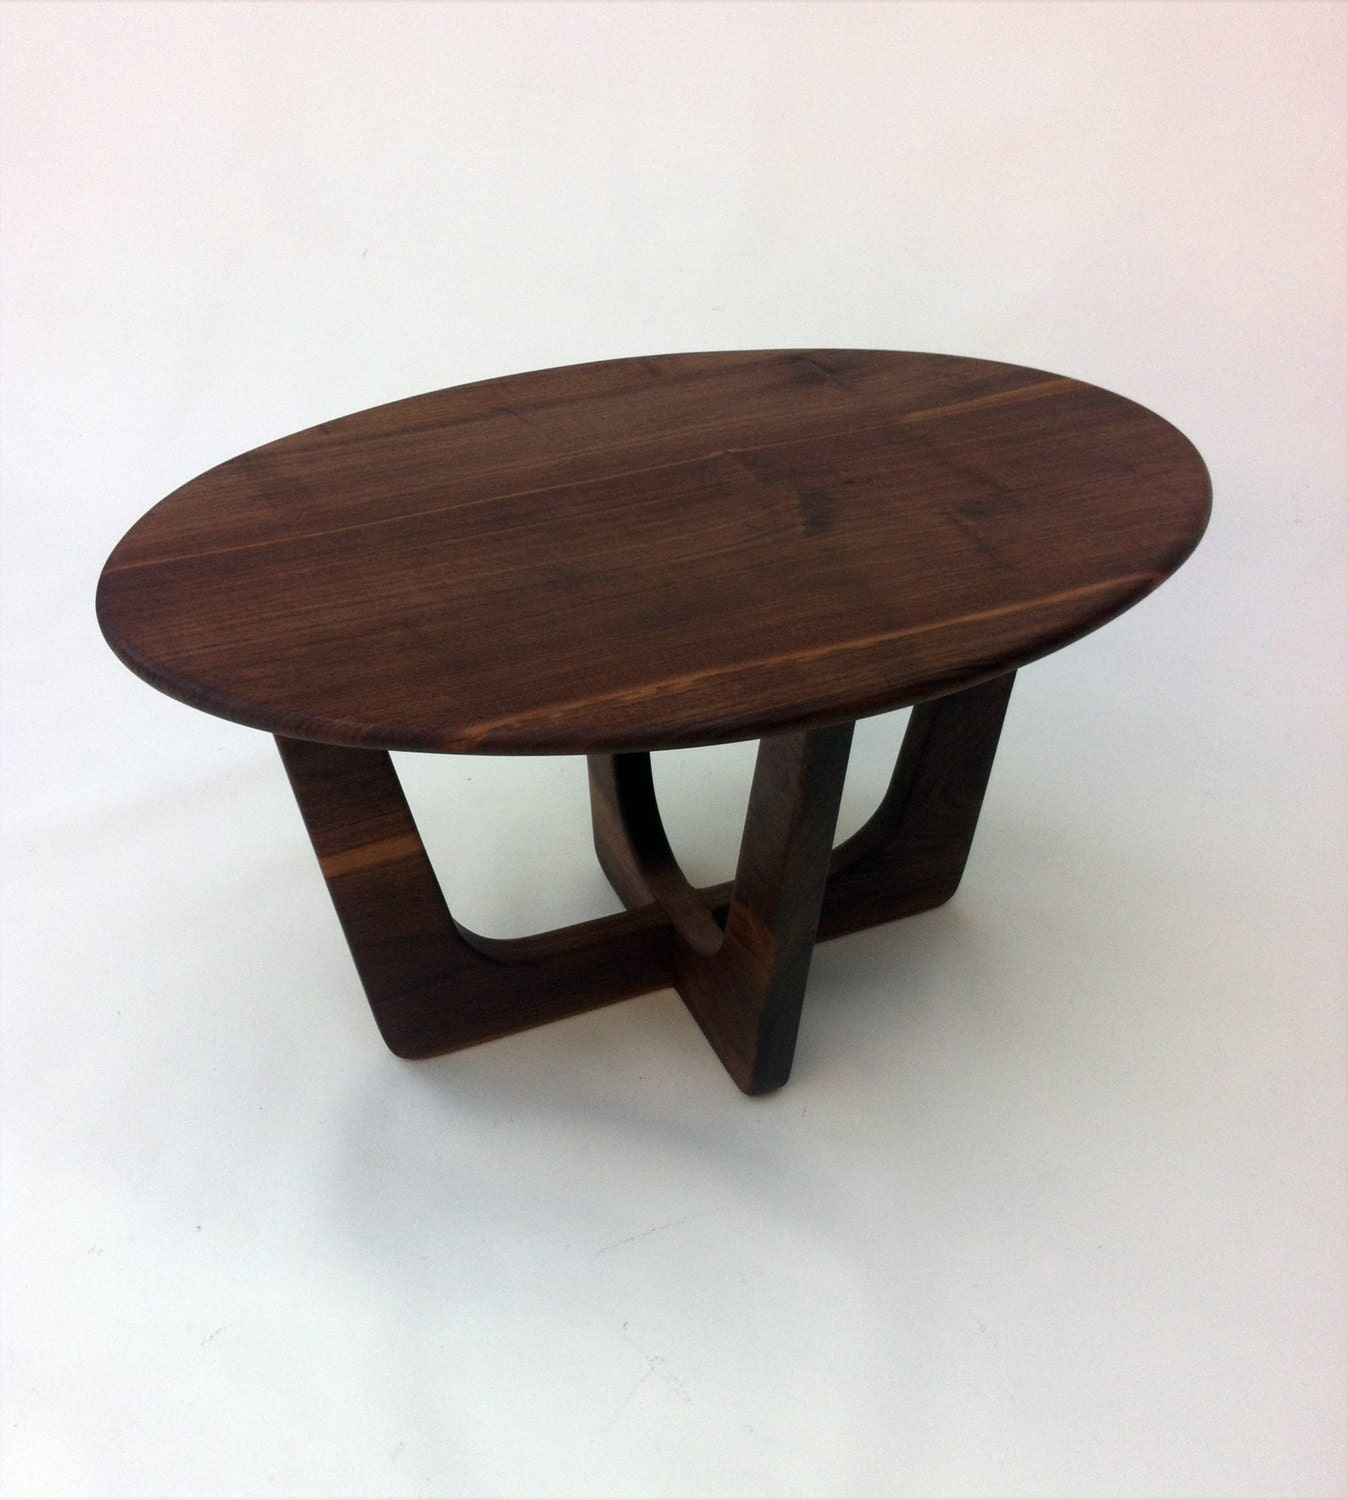 Pearsall Inspired 23x32 Oval Mid Century Modern Coffee